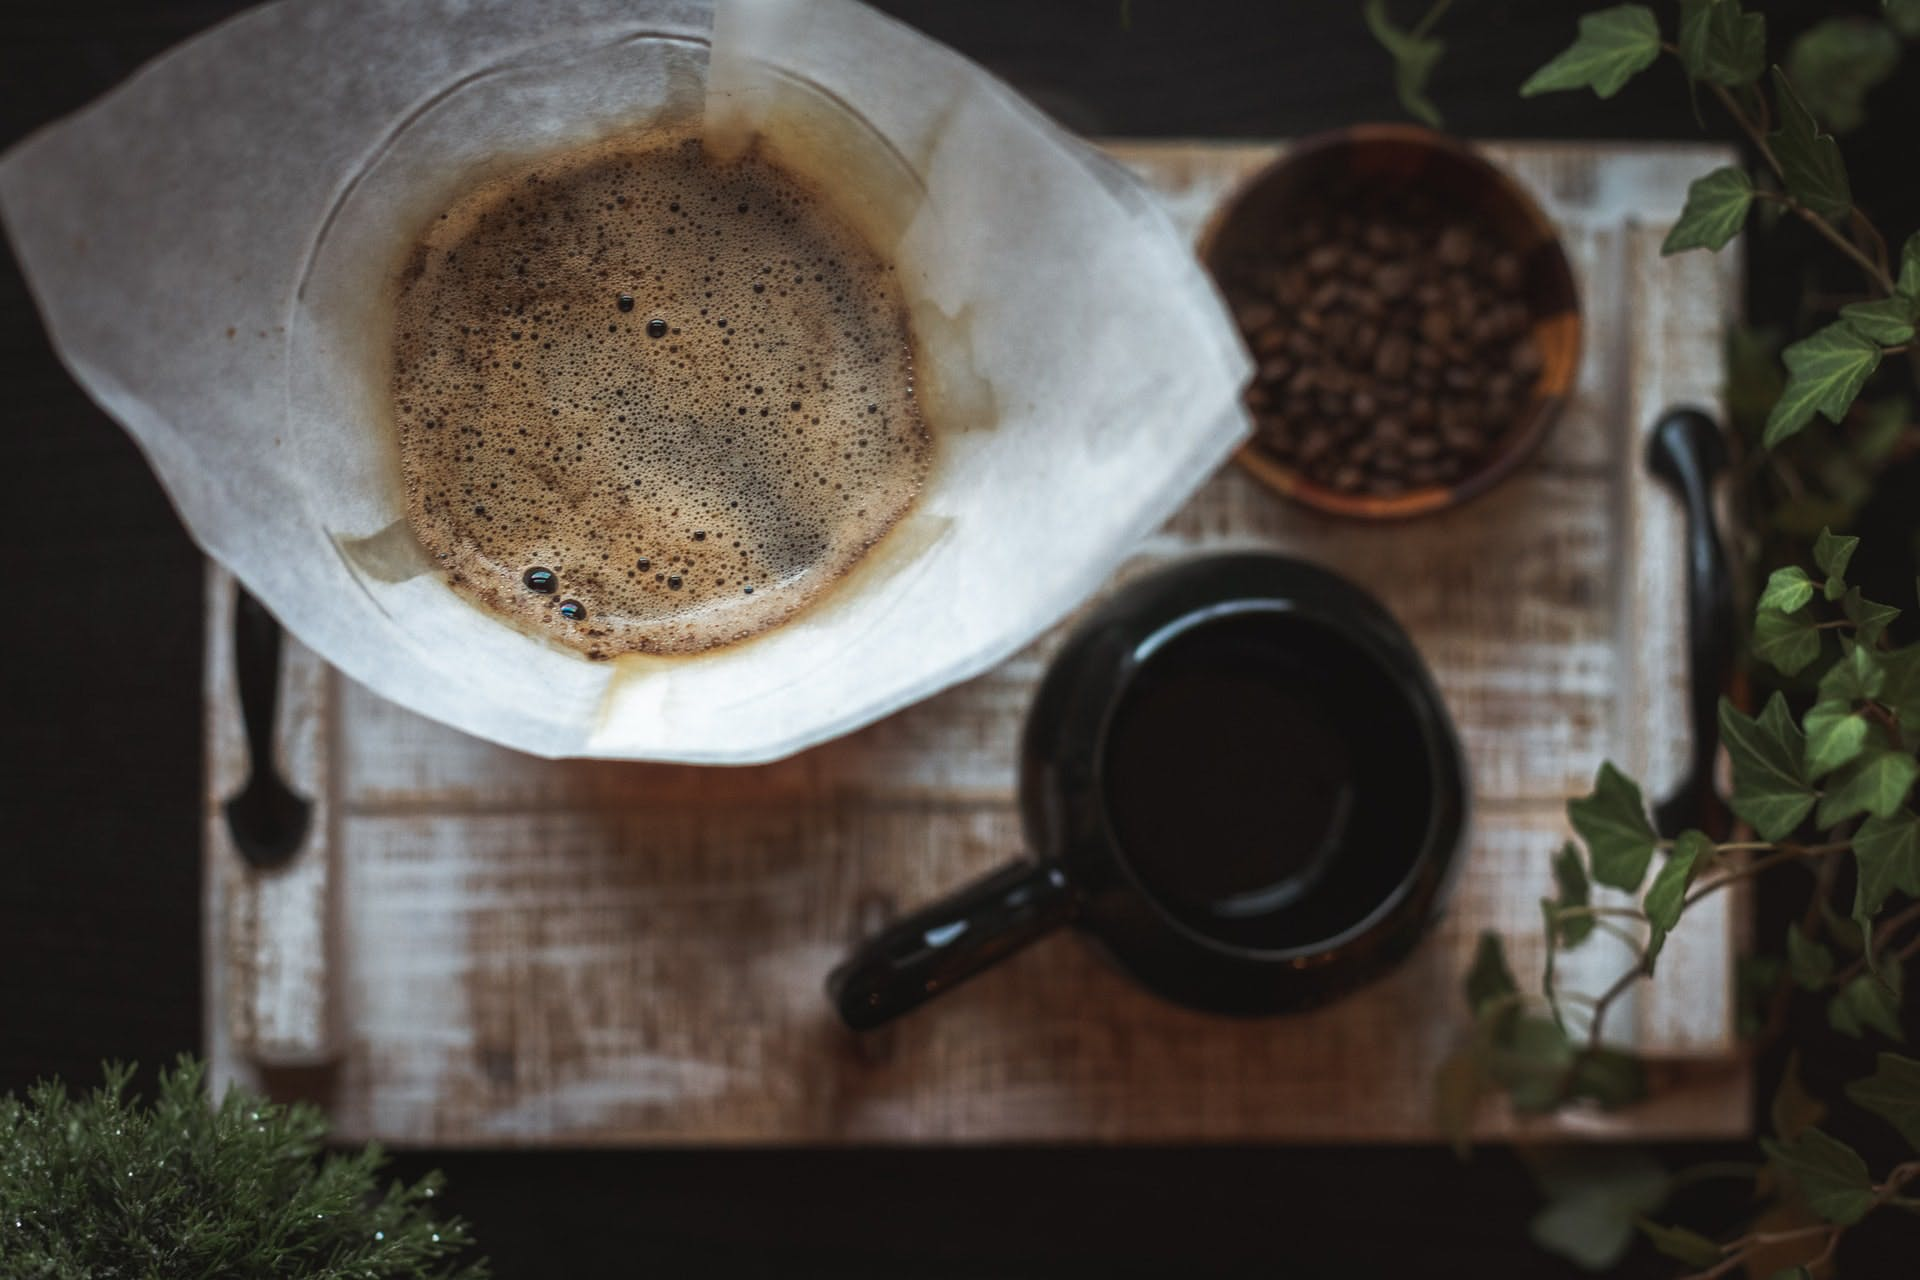 Drip coffee surrounded by a bowl of coffee beans and a black mug.